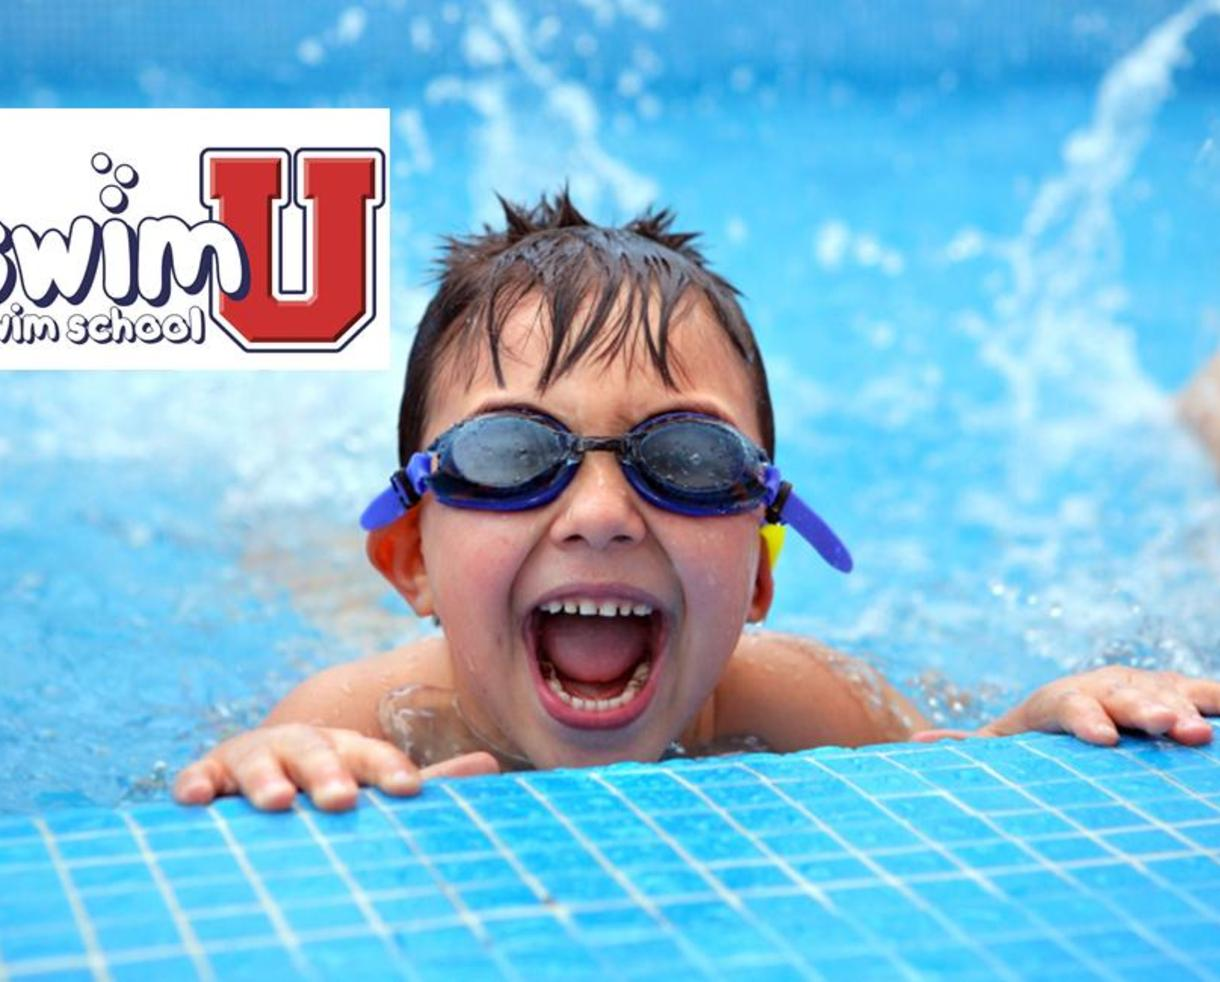 $40 for FOUR Weeks of Swim Lessons at Swim U Swim School! OR $150 for a Birthday Party (up to 55% off)